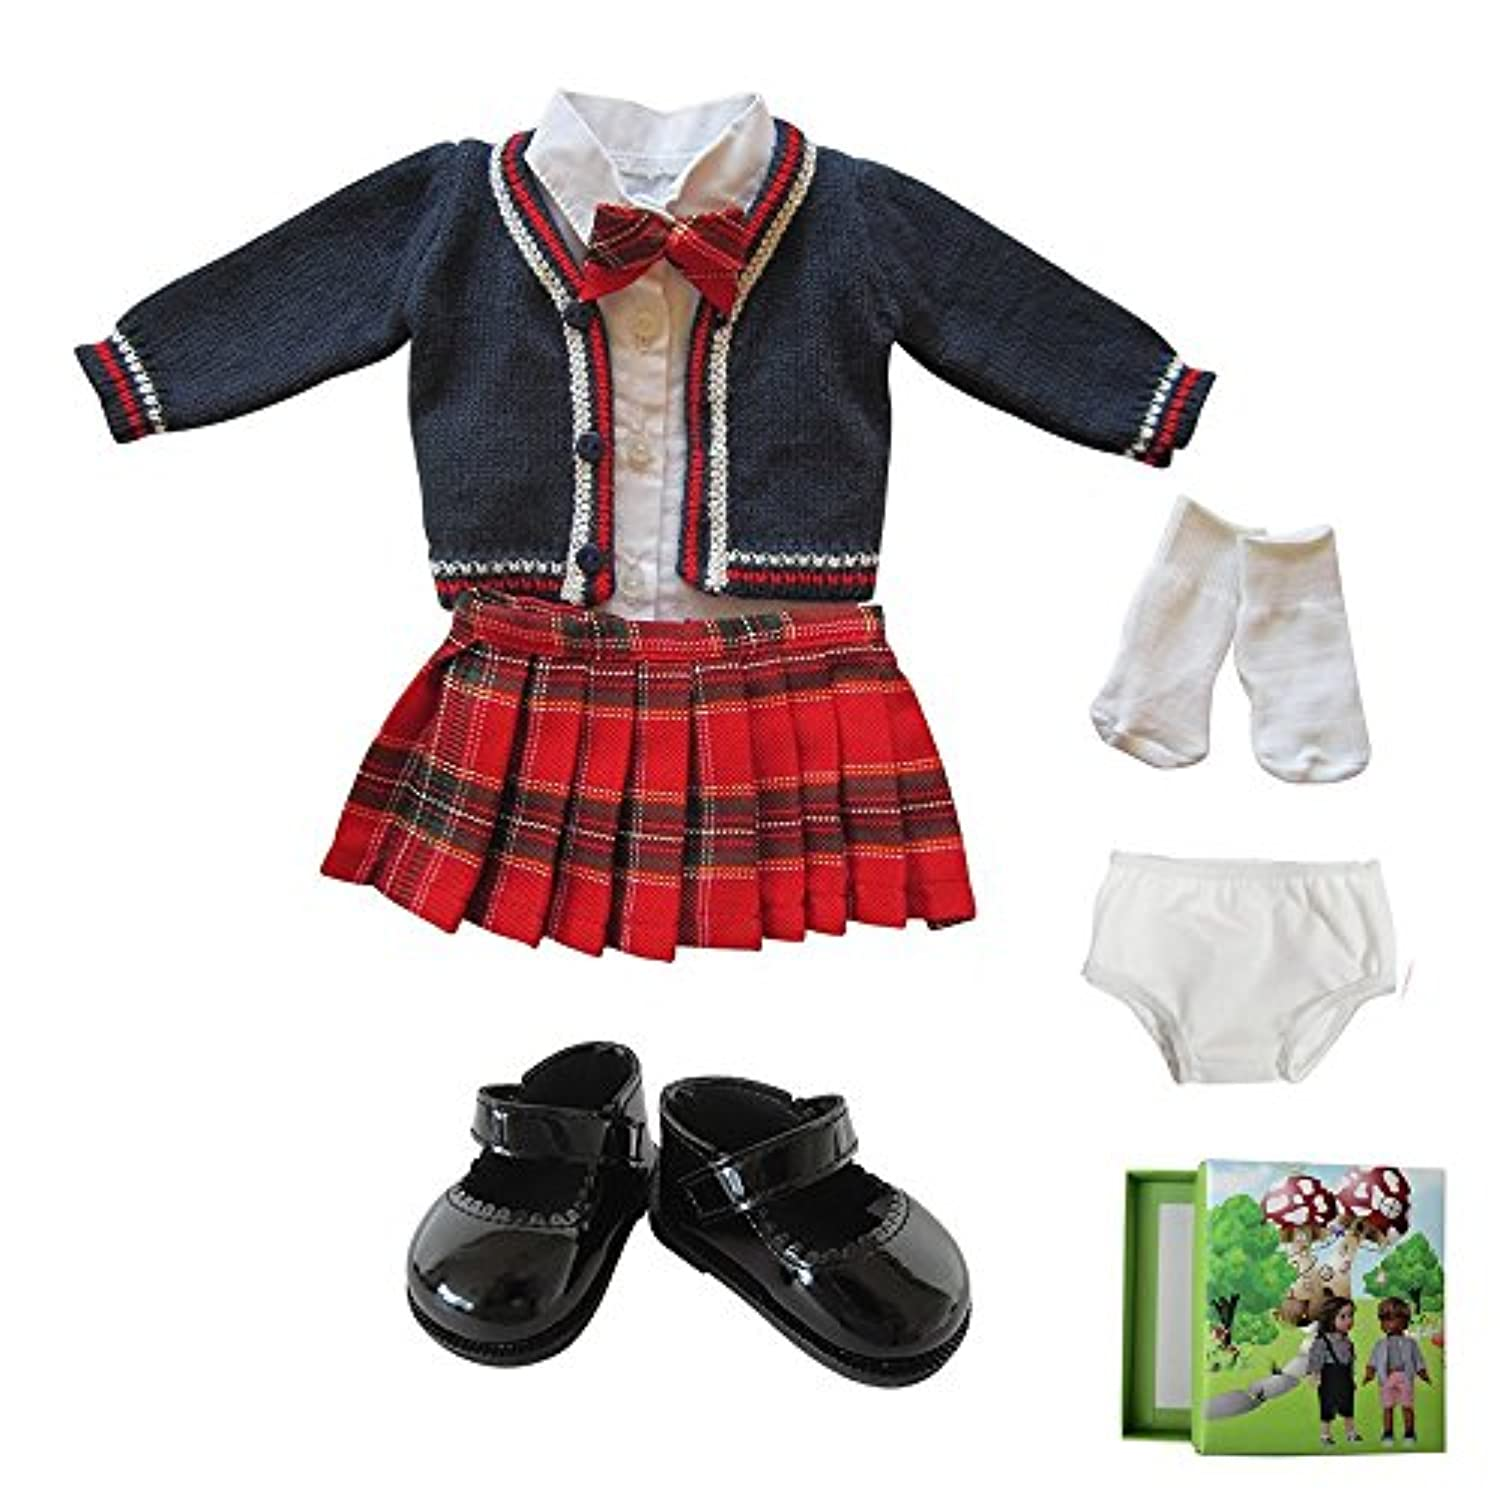 6 Piece Doll Clothes School Uniform for 46cm American Girl Dolls, Sweater, Skirt, blouse with Tie, Socks ,Underwear and Black Leather Shoes